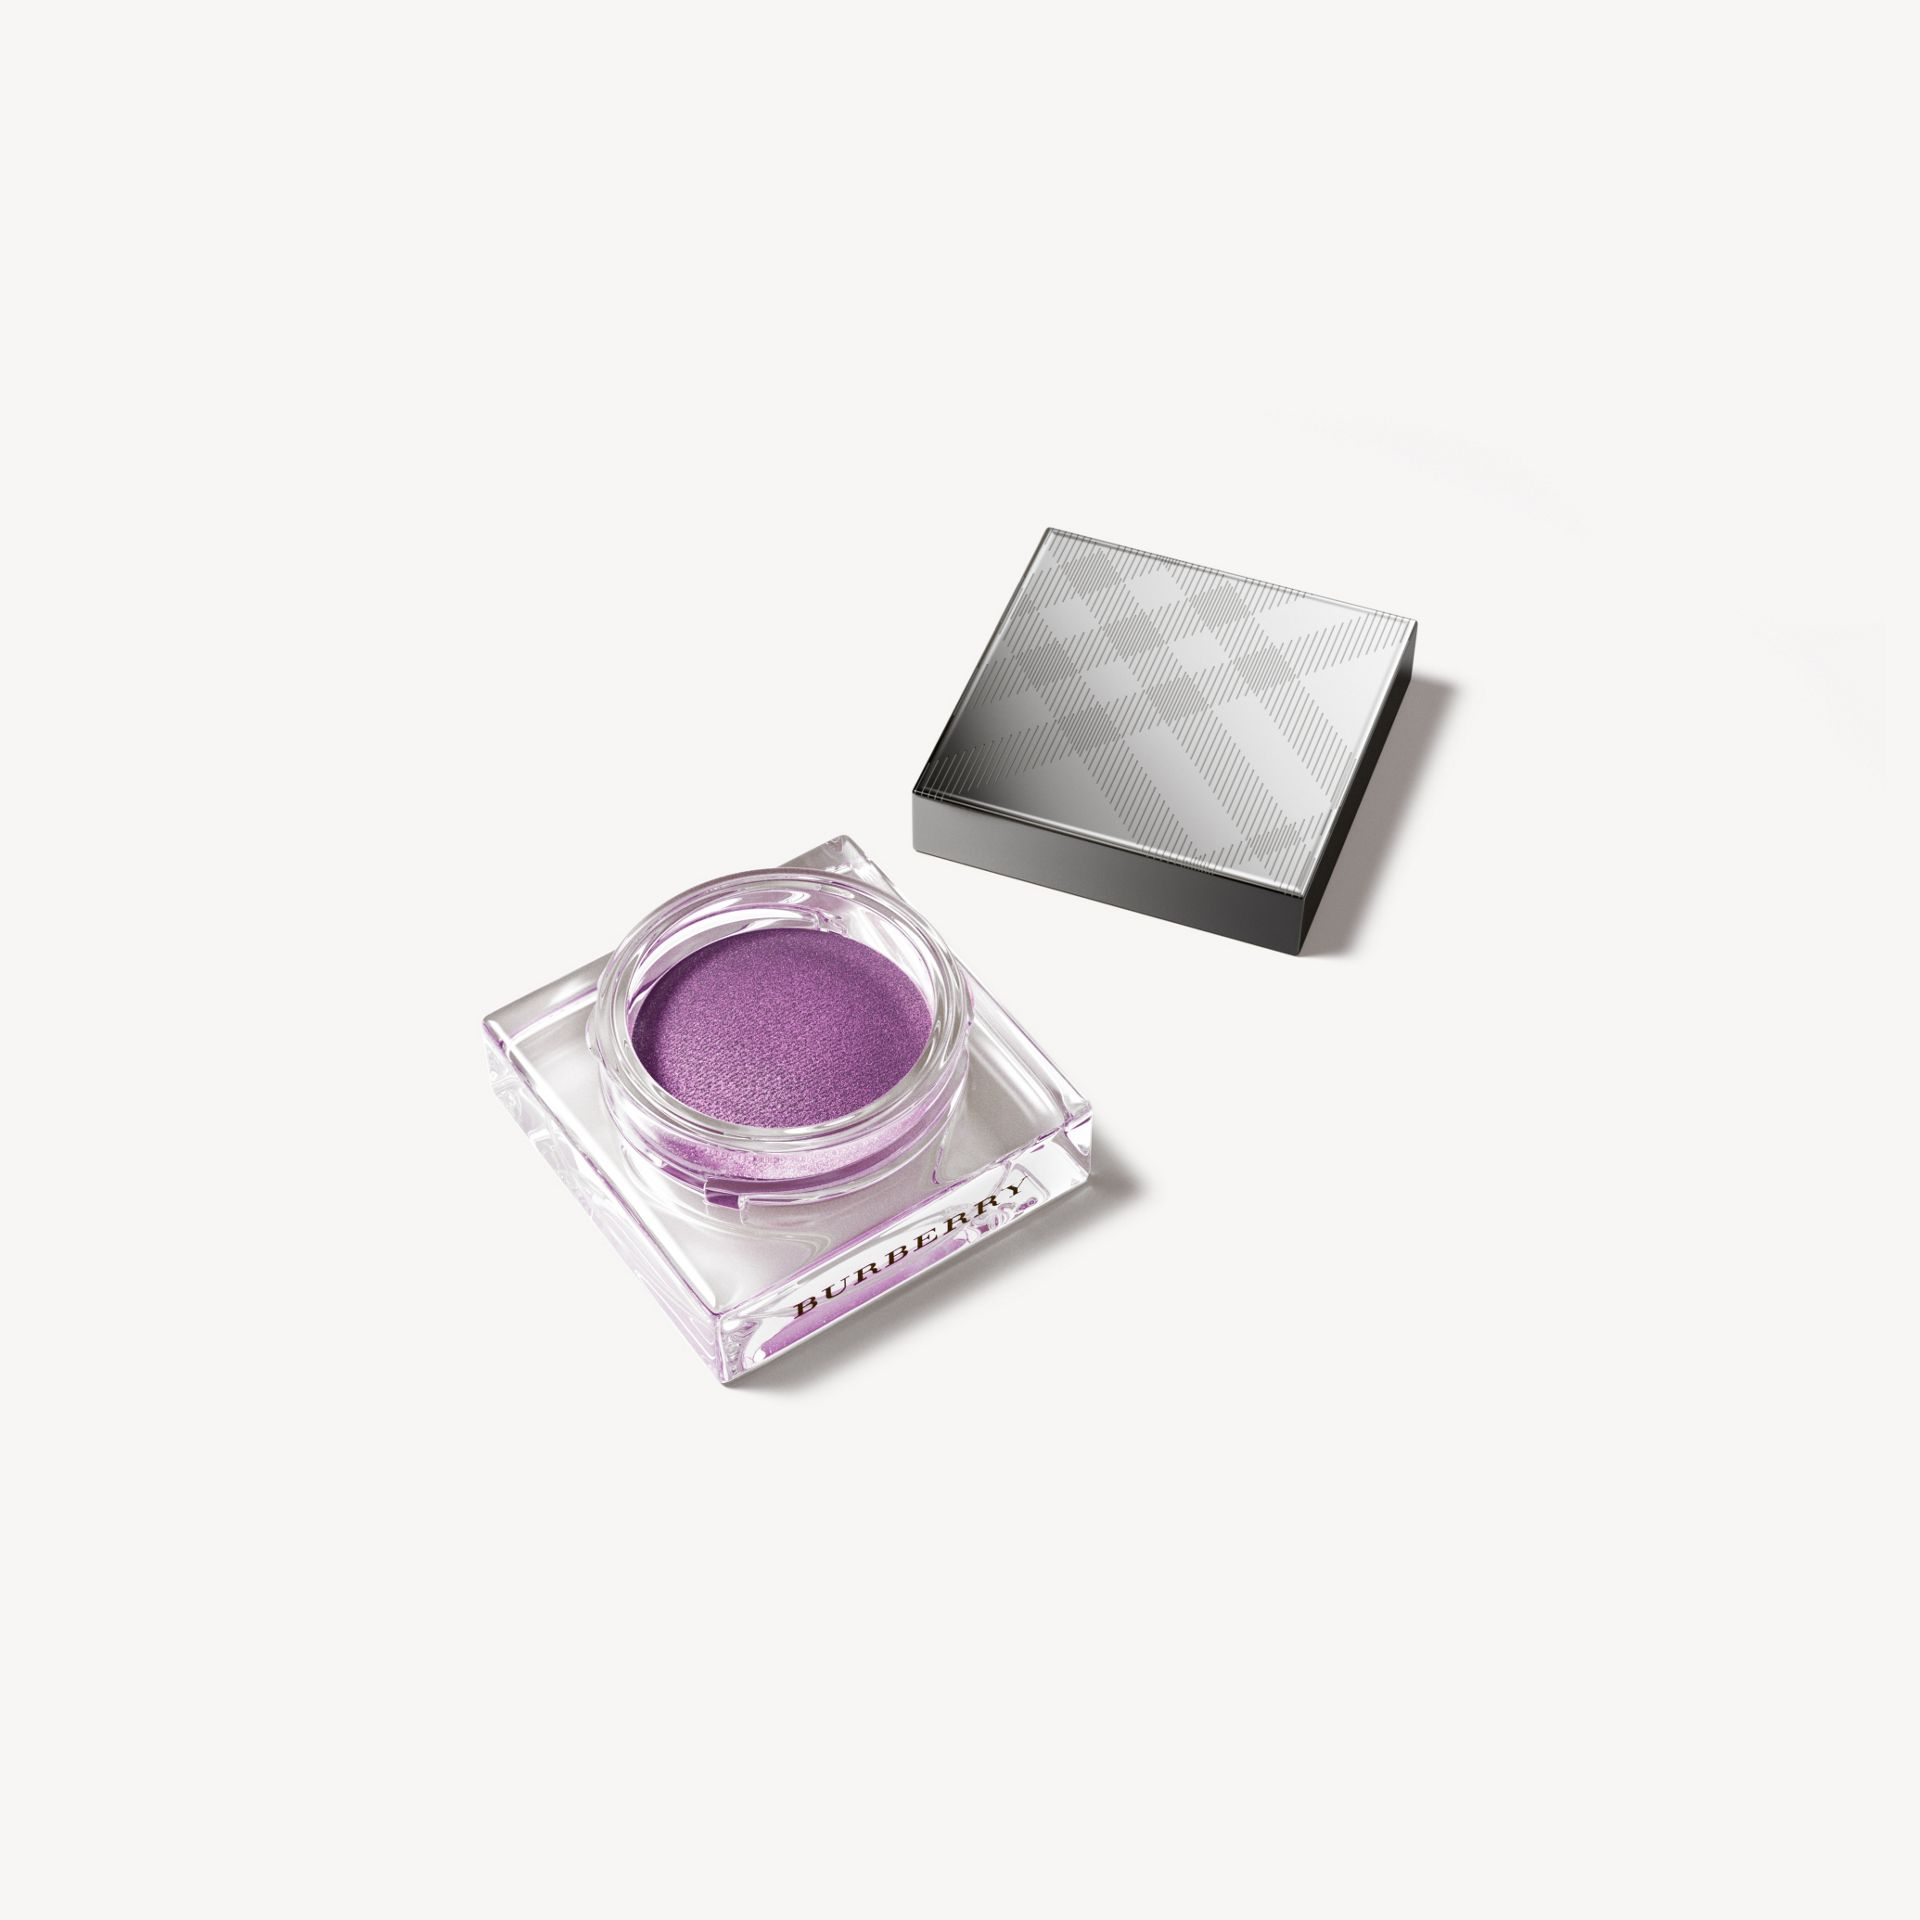 Damson 110 Eye Colour Cream – Damson No.110 - Galerie-Bild 1